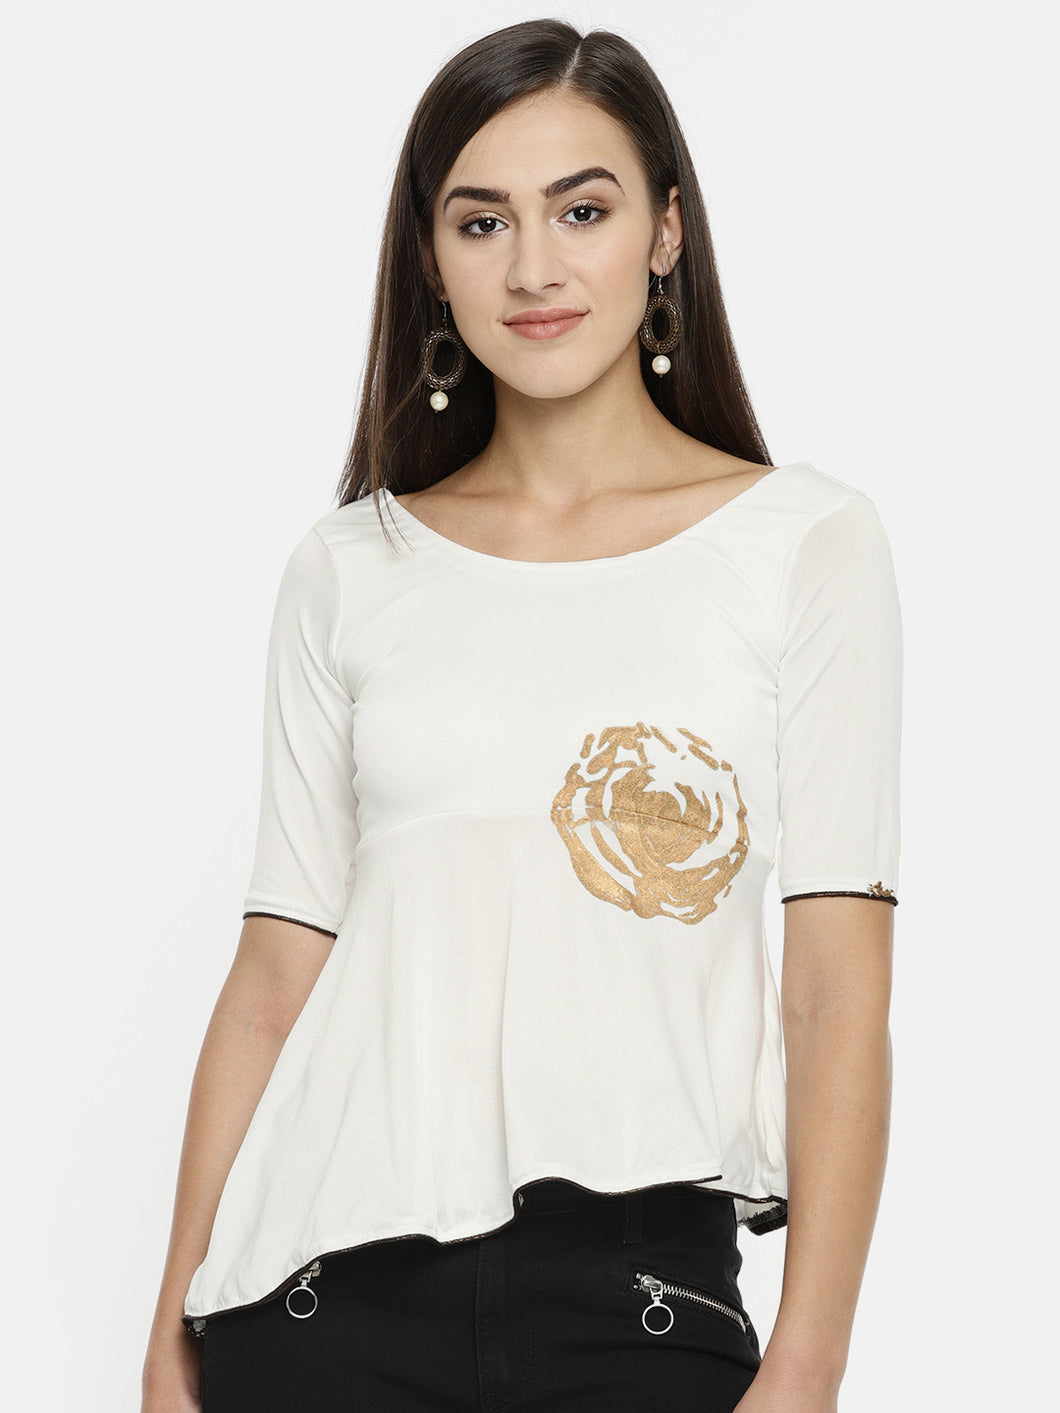 ASYMETRICAL HEM SHORT TOP-Women White & Gold Printed Knitted Empire Top